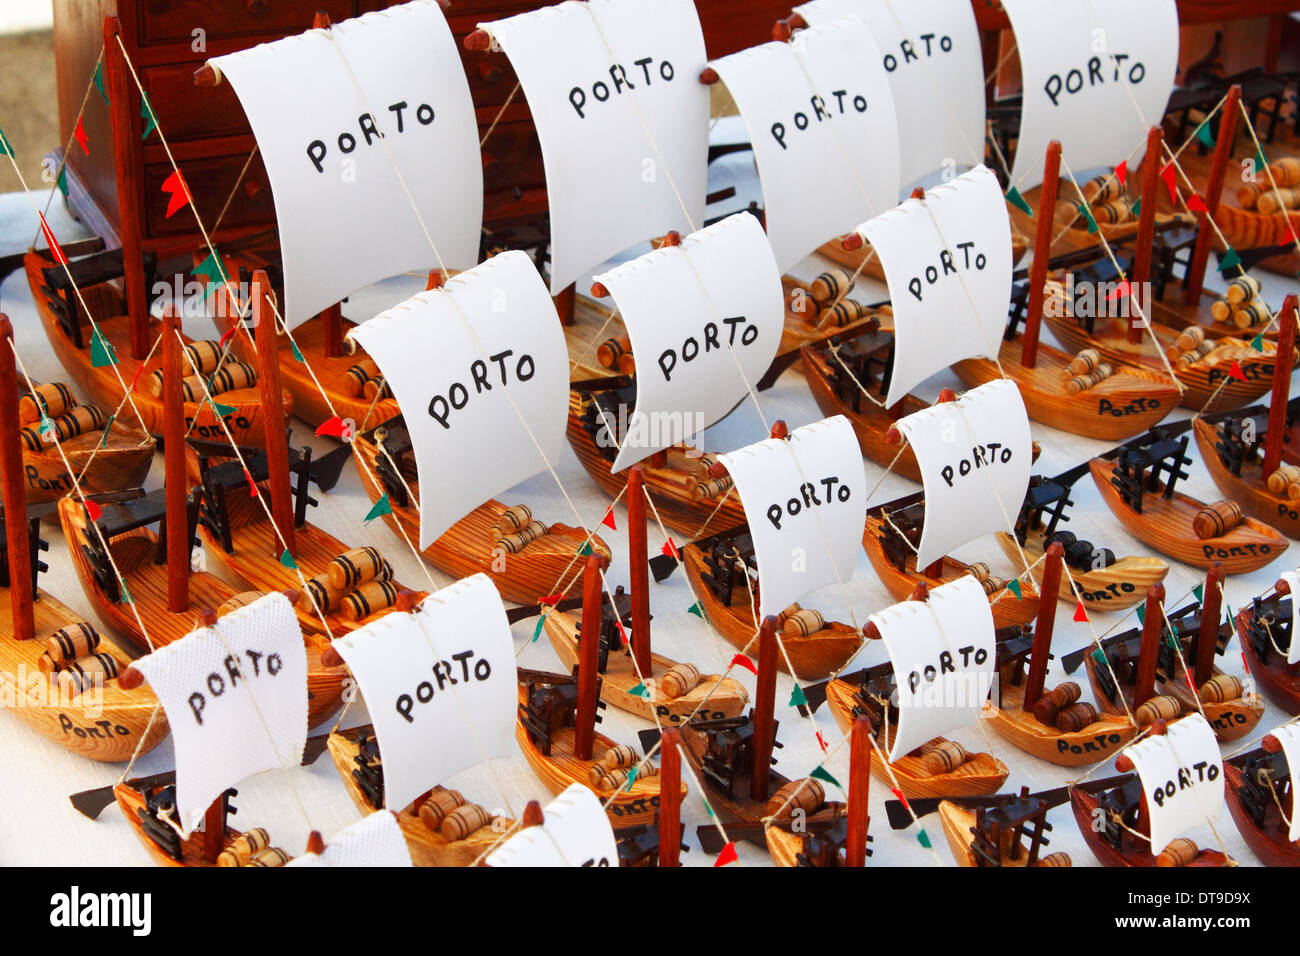 Souvenirs of Porto, many little wooden boat models with white sails that have Porto inscribed on them - Stock Image